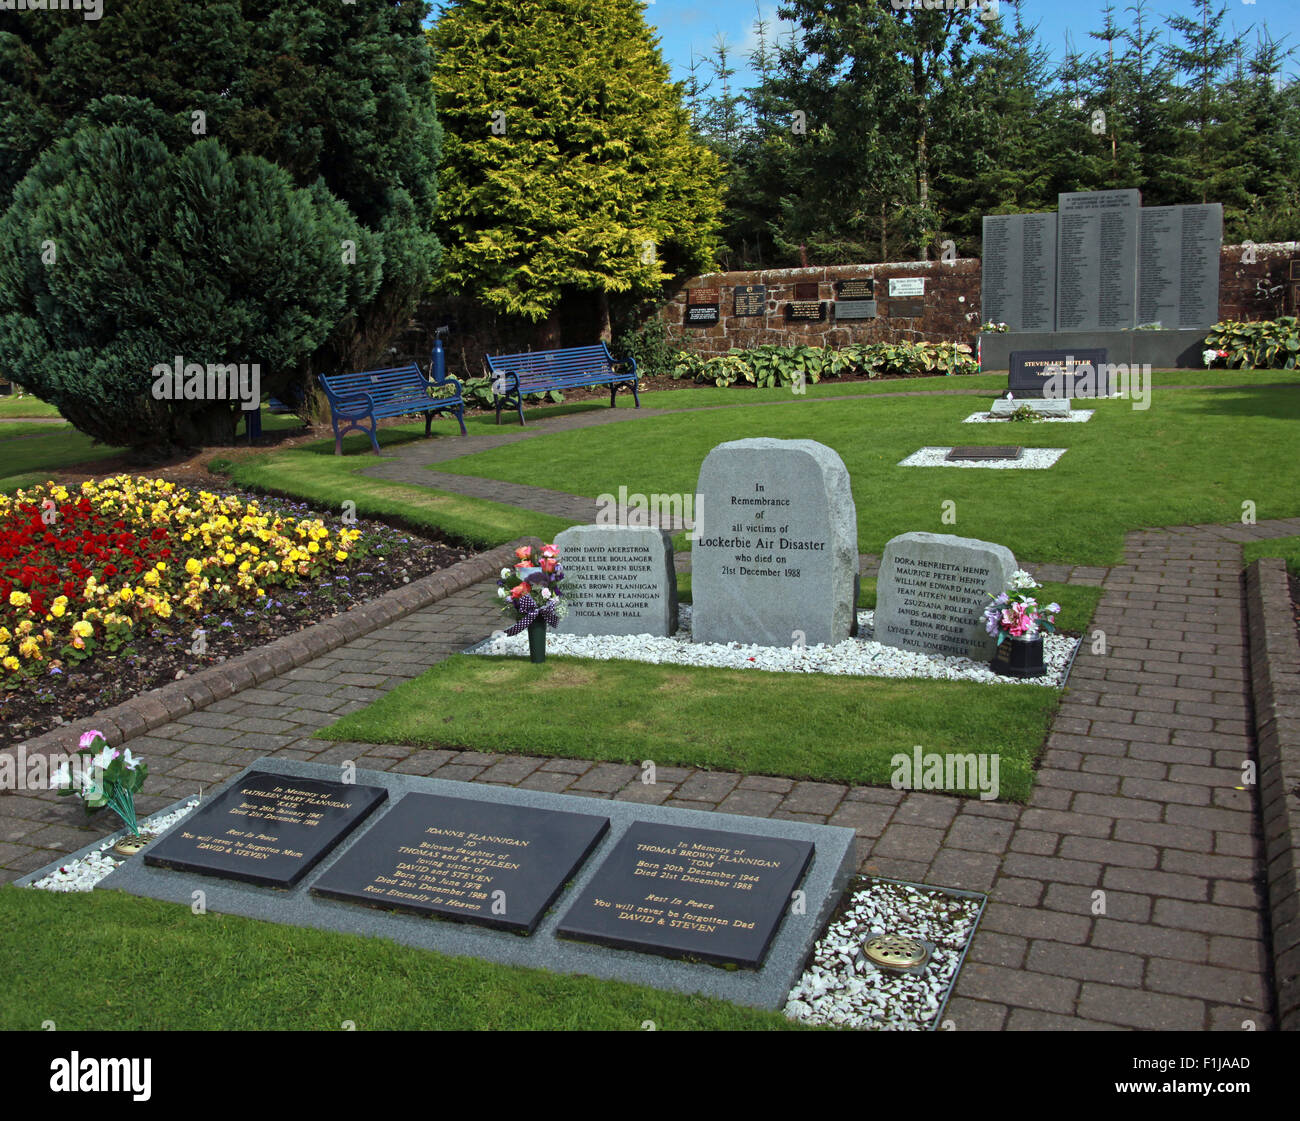 Lockerbie PanAm103 In Rememberance Memorial Garden, Scotland - Stock Image